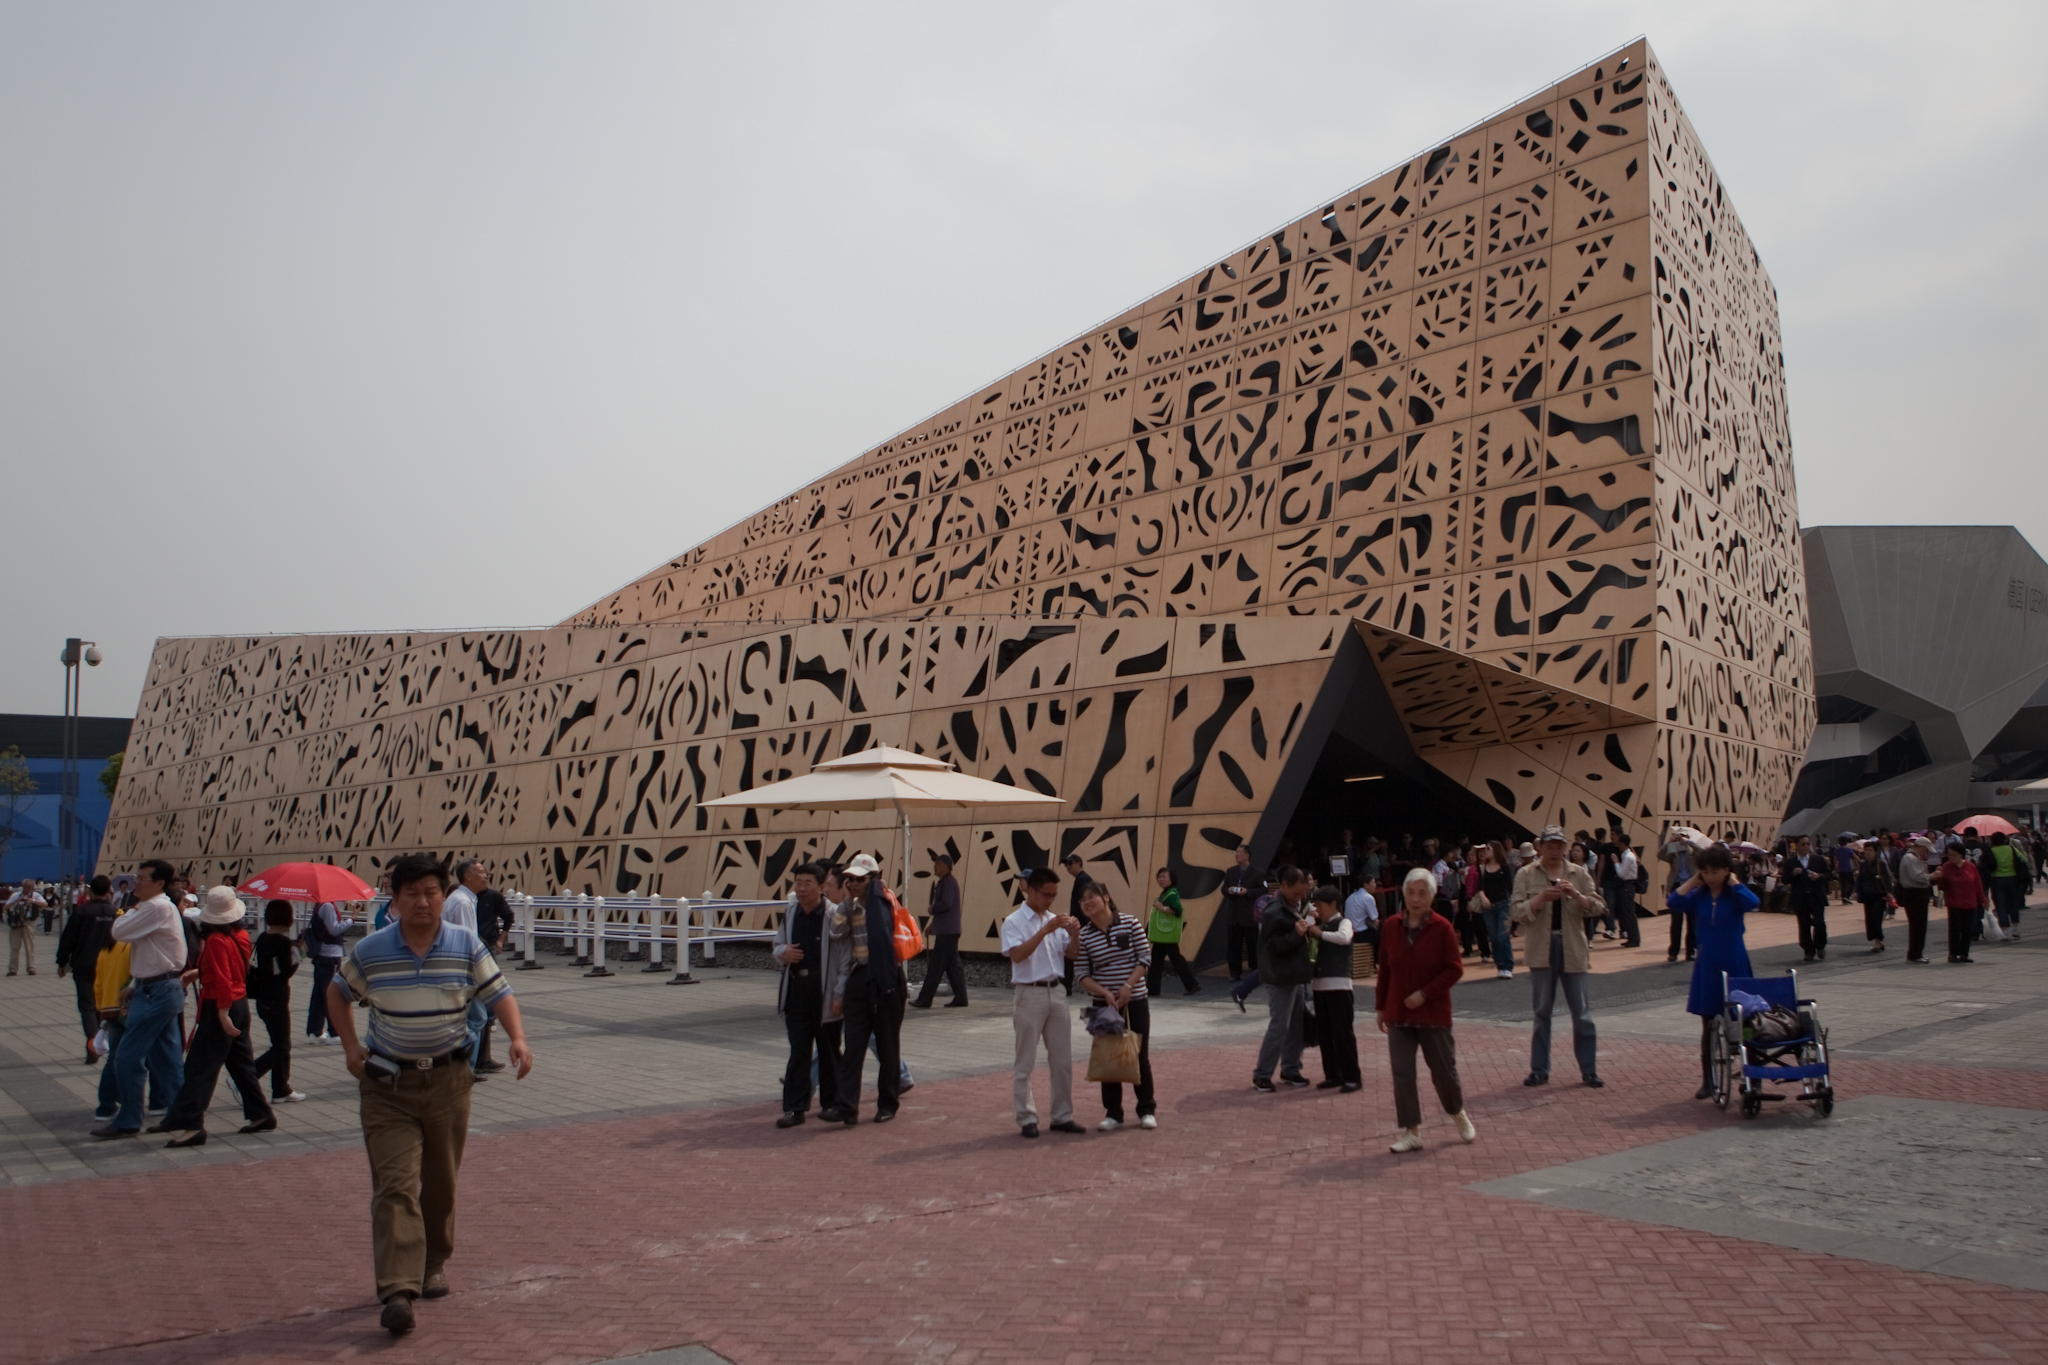 File:Poland\u0027s Pavillion at the 2010 World Expo in Shanghai.jpg ...